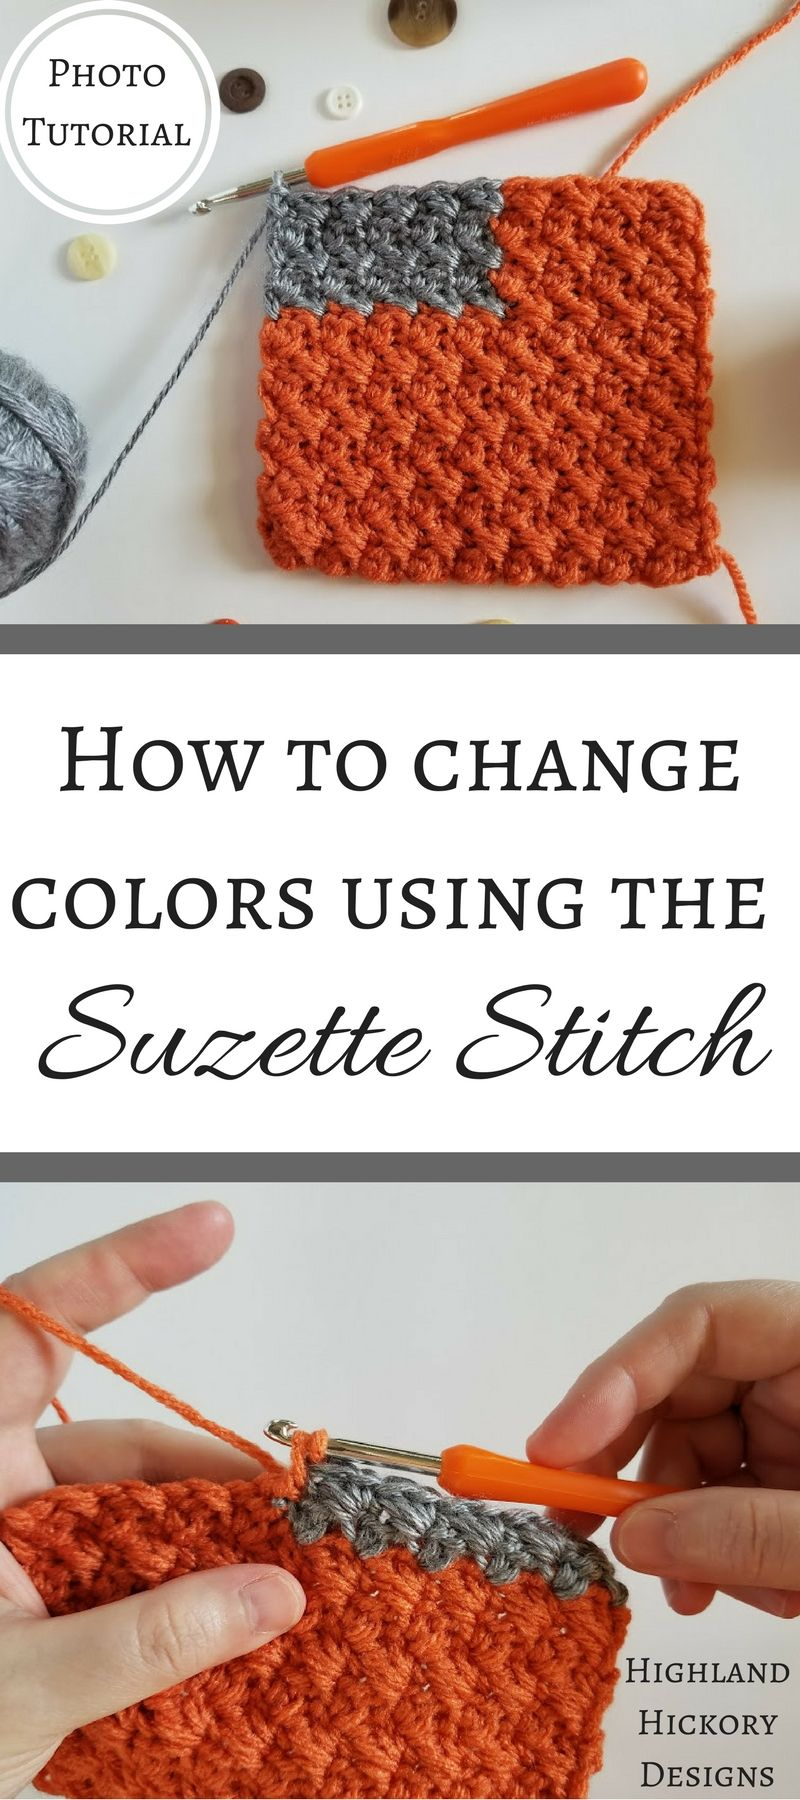 How To Change Colors Using The Suzette Stitch | Diy häkeln, Häkeln ...